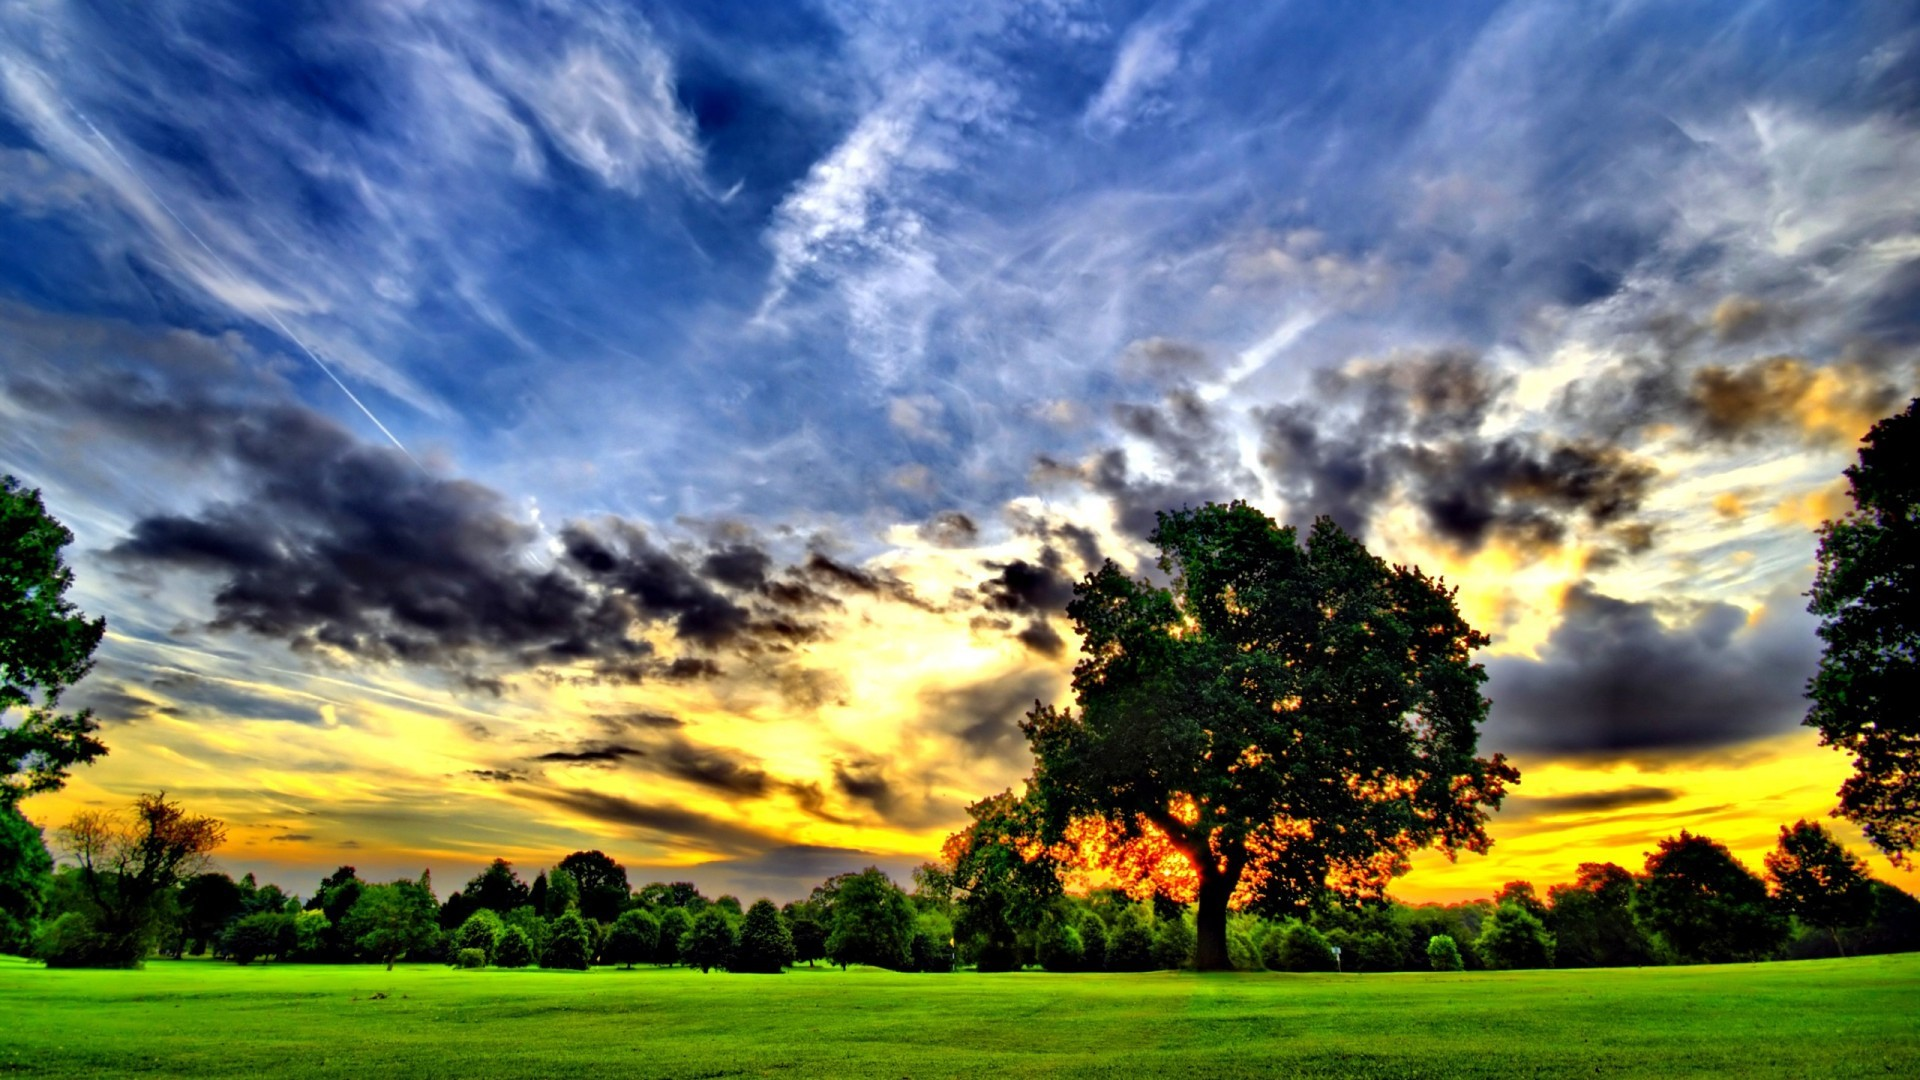 Colorful nature wallpapers 74 pictures - Colorful nature pics ...